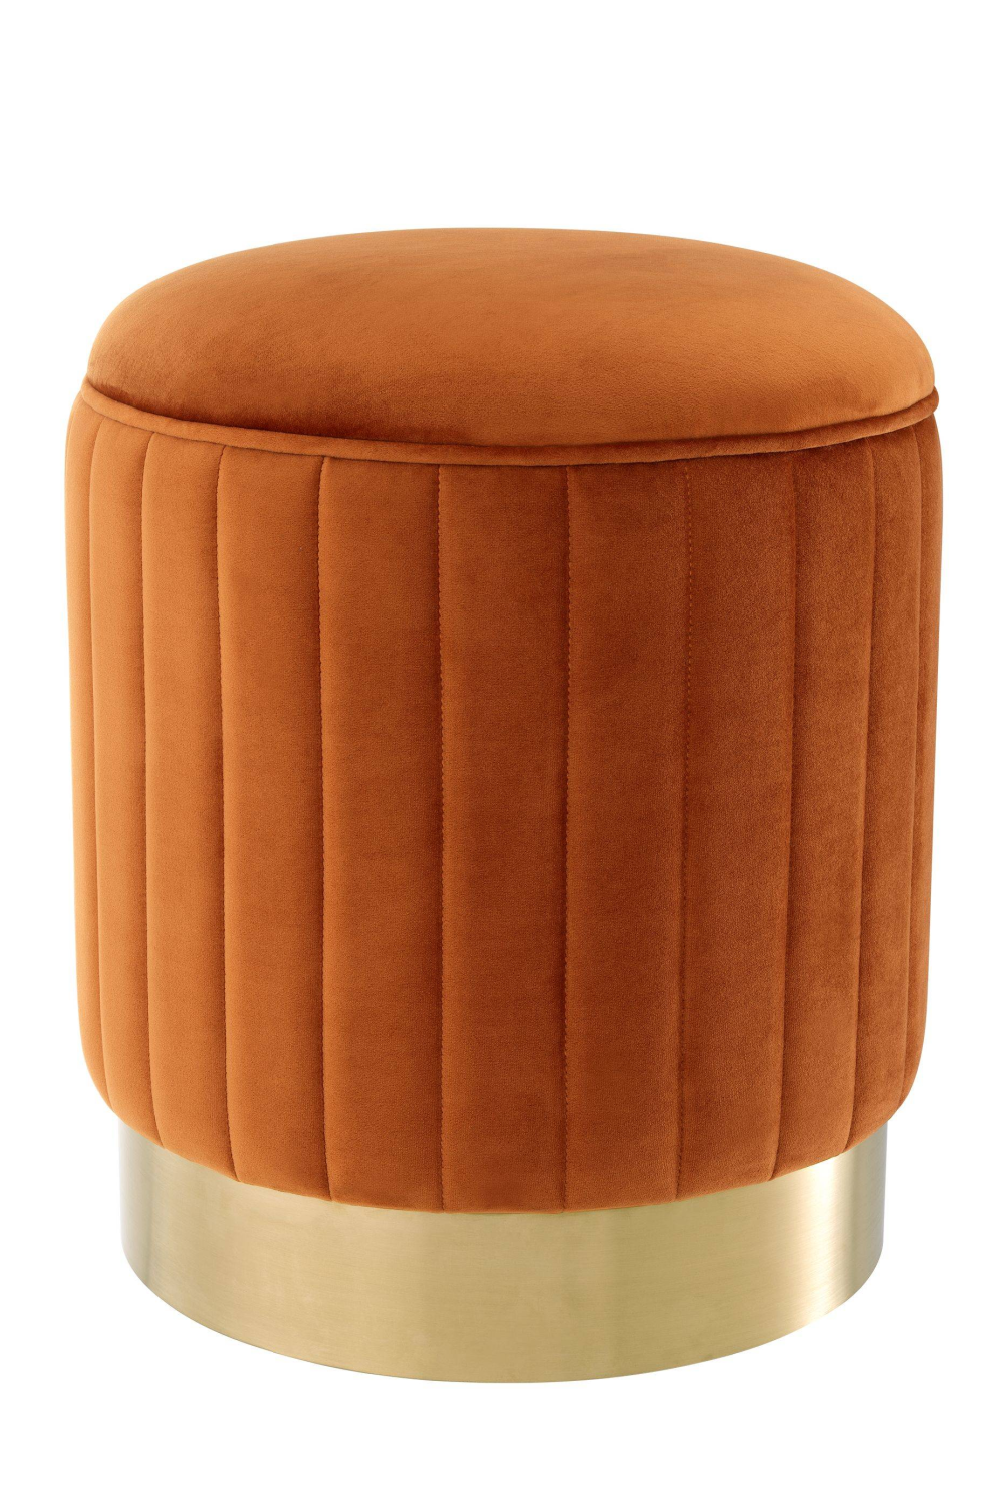 Orange Gold Base Stool | Eichholtz Allegra | #1 Eichholtz Online Retailer